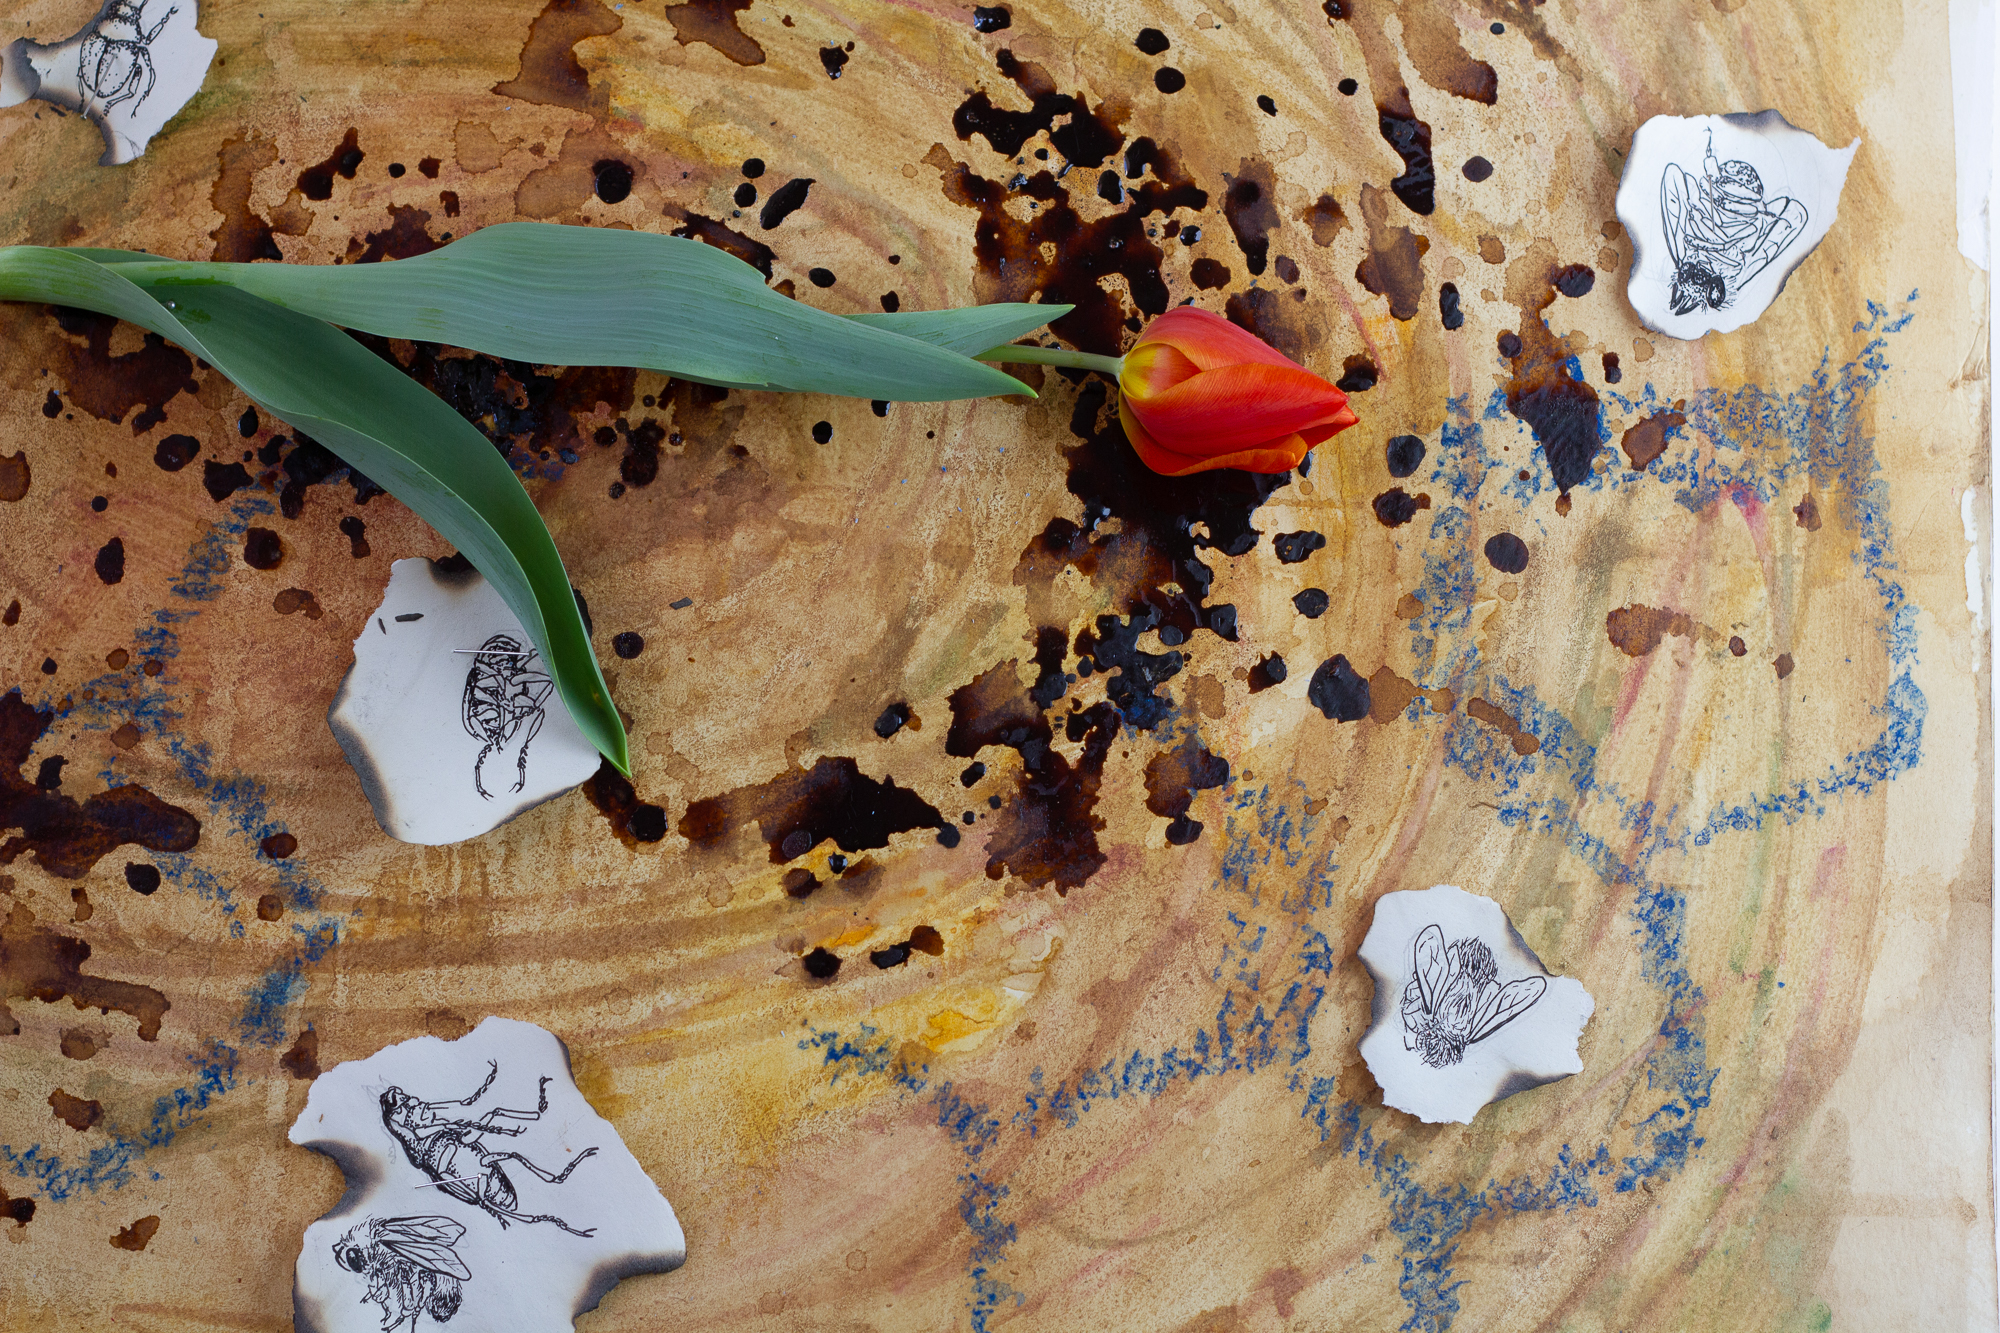 Close-up of the tulip petals and stem of the tulip circled by illustration of dead insects